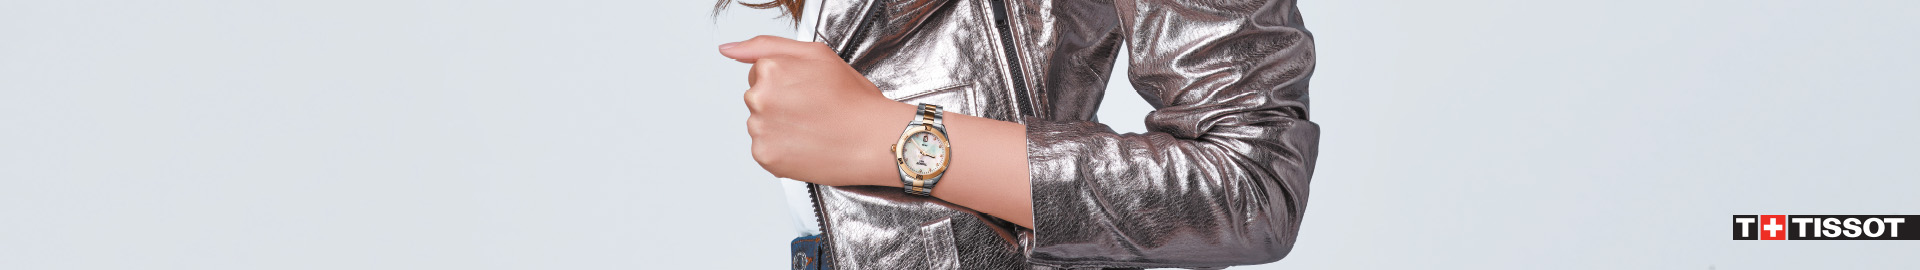 Tissot ladies watches Zazare Diamonds